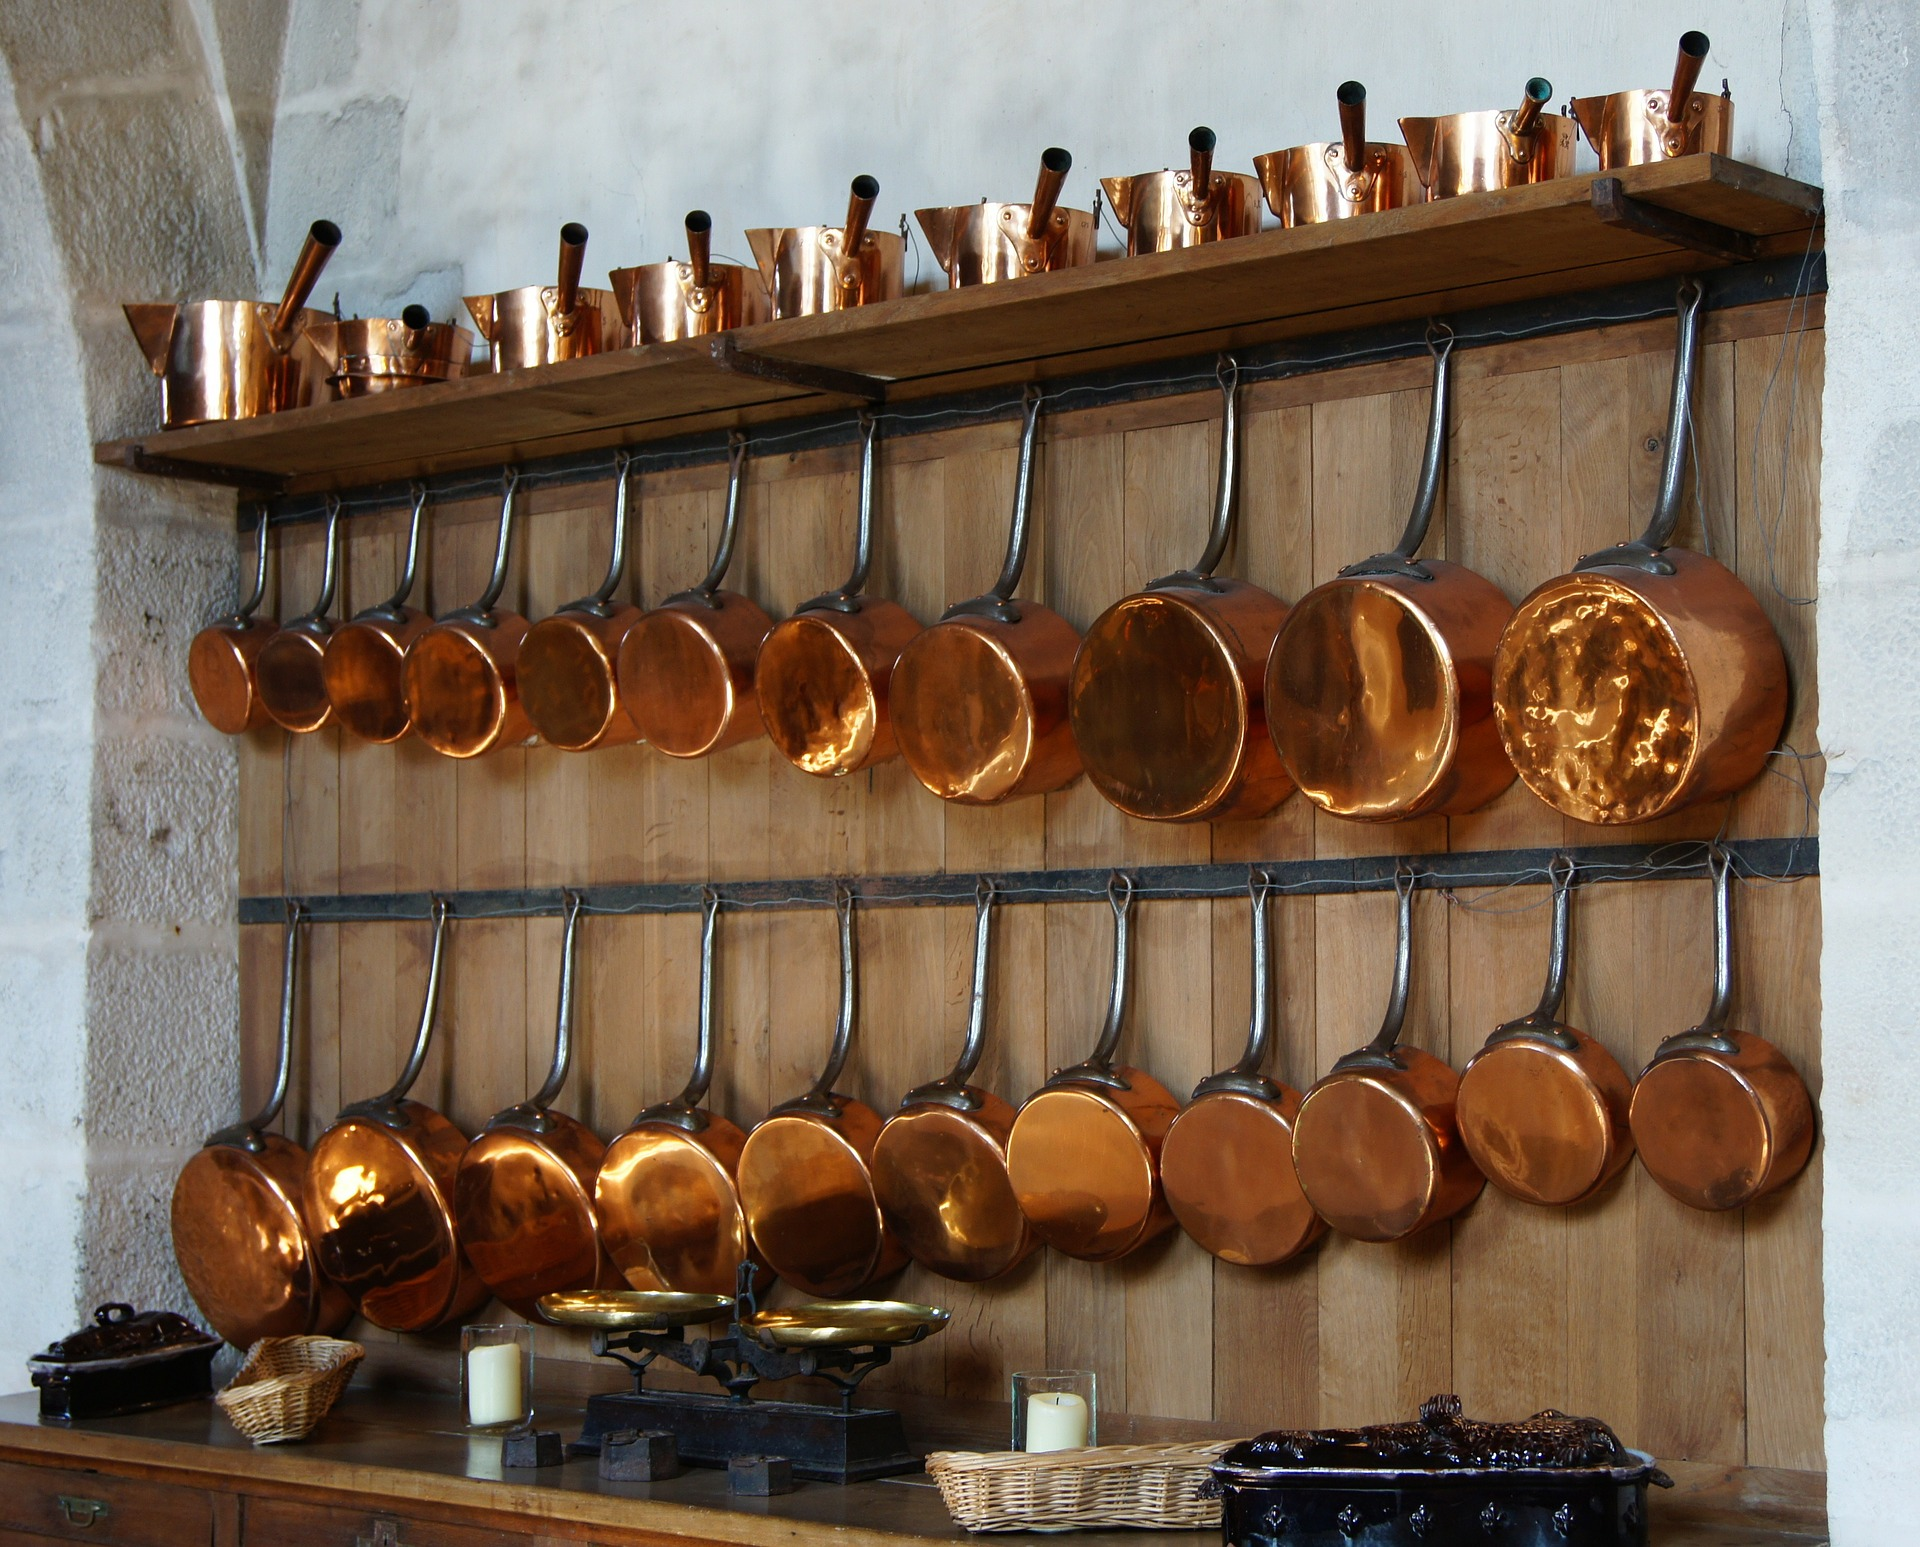 3 Ideas for Storing Pots and Pans More Effectively's featured image